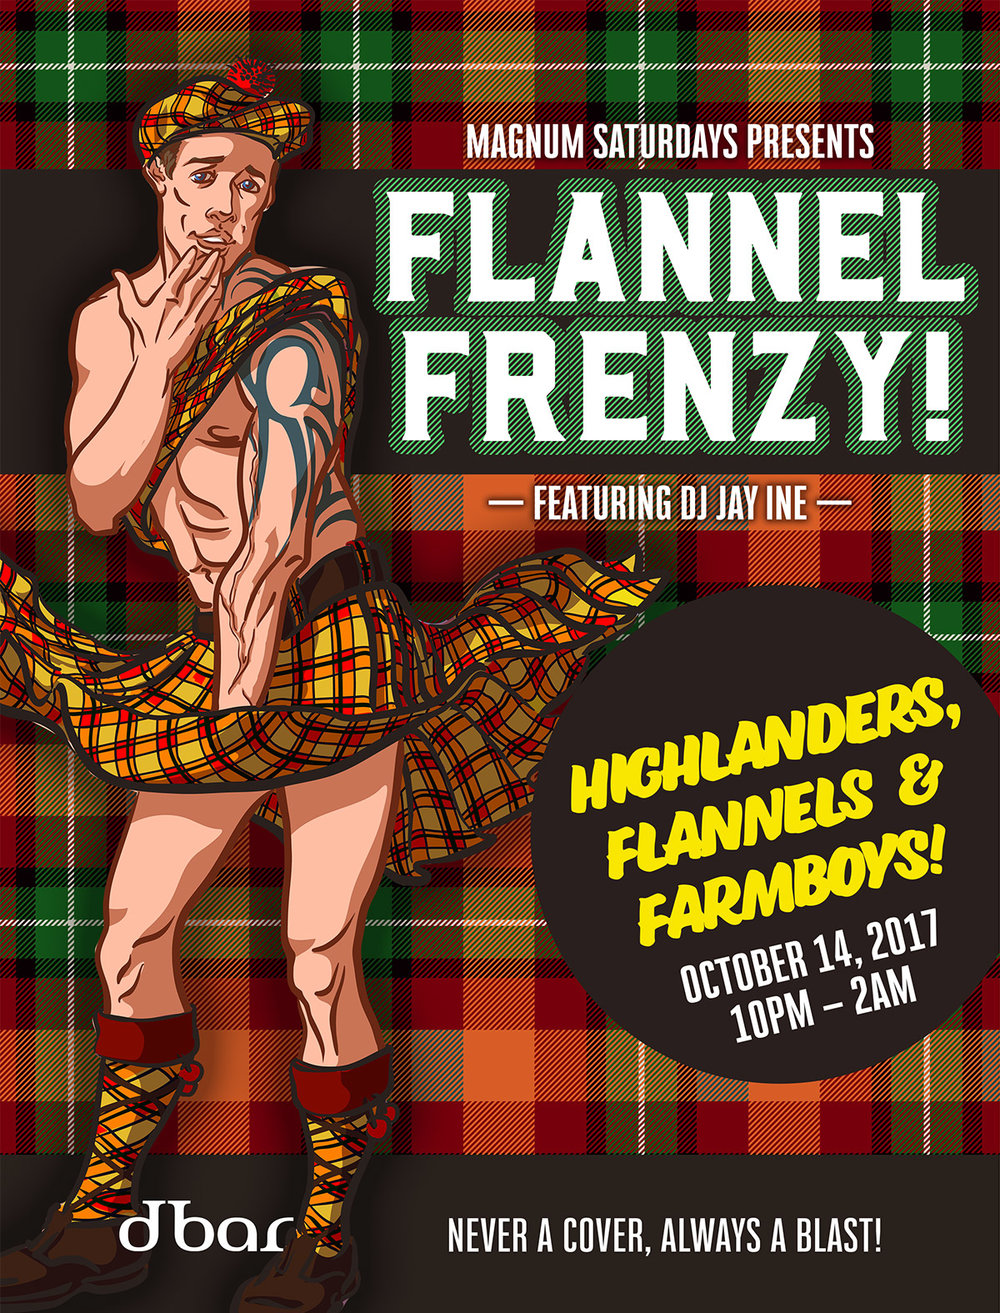 flannel-frenzy.jpg